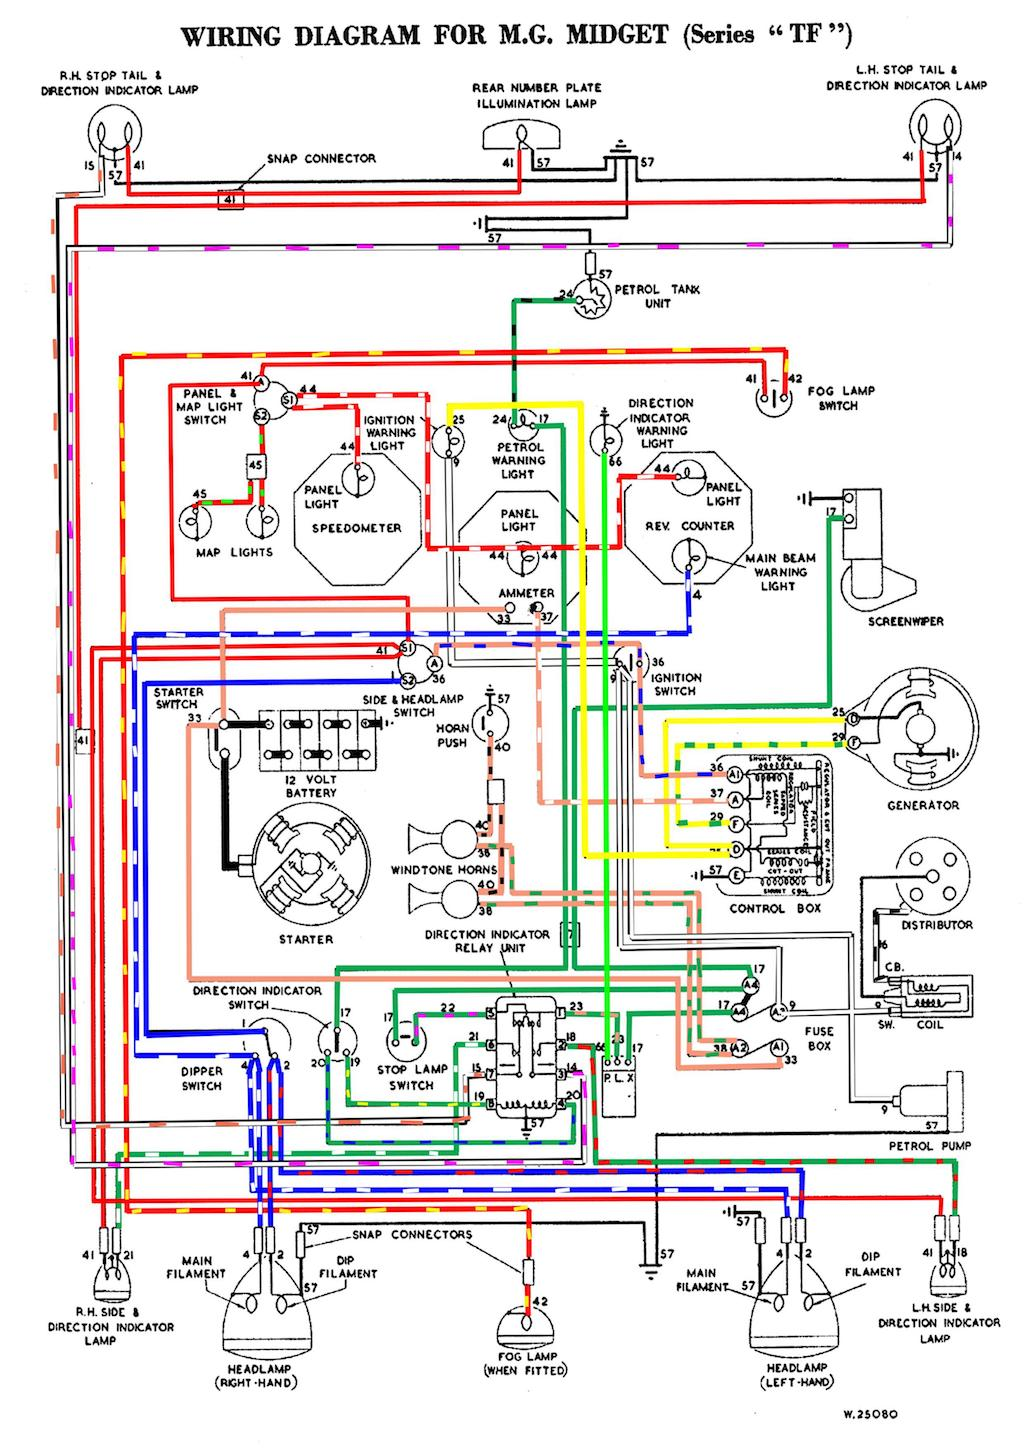 DIAGRAM] 1978 Mg Wiring Diagram FULL Version HD Quality Wiring Diagram -  ELECTRONICCIRCUITDIAGRAMS.EMERICGATELIER.FRelectroniccircuitdiagrams.emericgatelier.fr